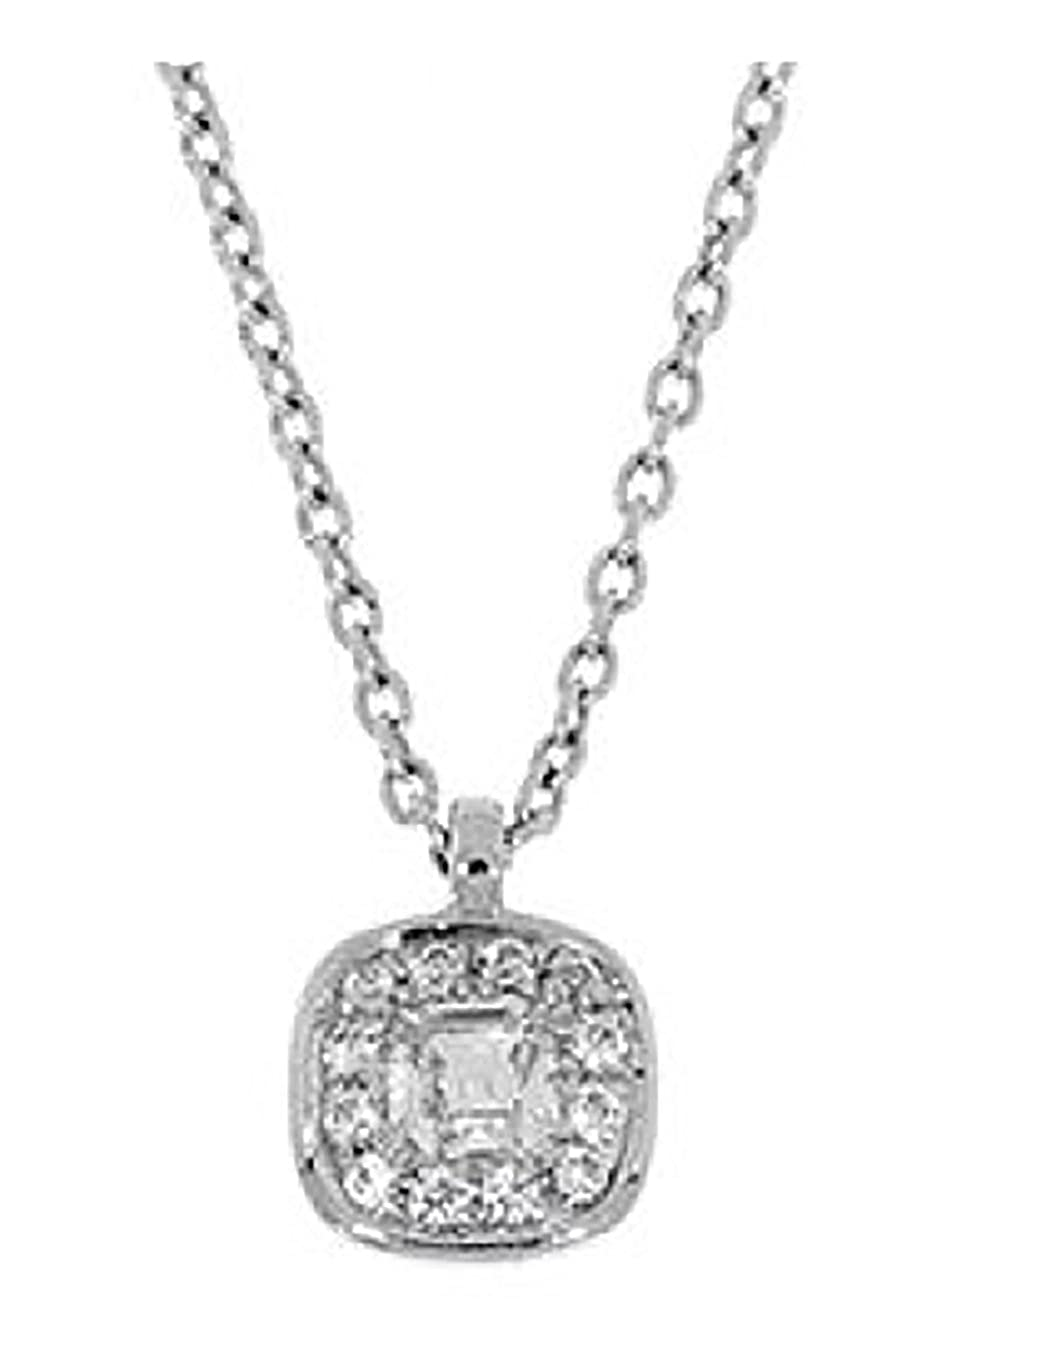 Solid Sterling Silver CZ Accented Halo Necklace-Adjustable Chain 16 Inch-18 Inch PSWO